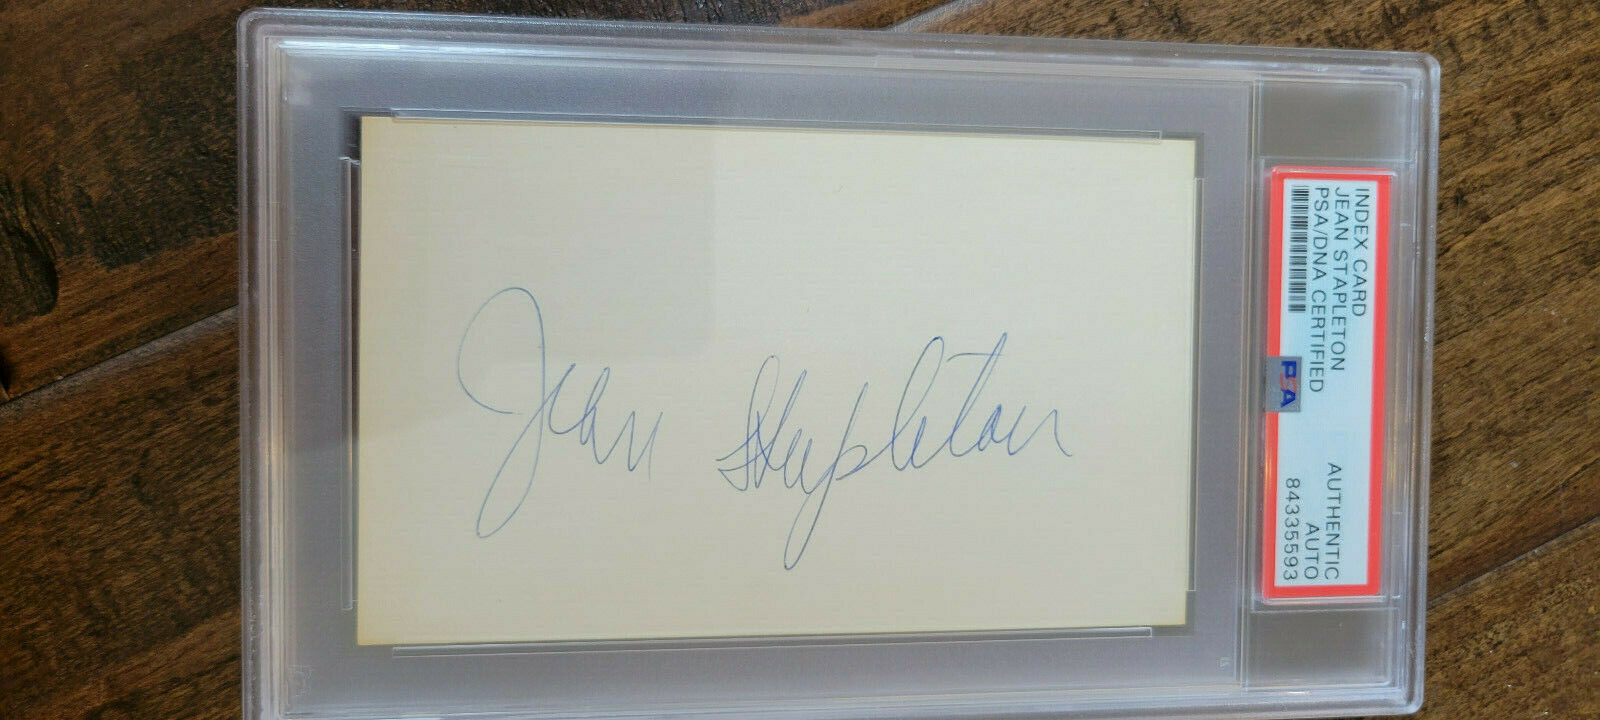 JEAN STAPLETON SIGNED 3X5 INDEX CARD ALL IN THE FAMILY EDITH BUNKER SLAB PSA DNA - $84.99